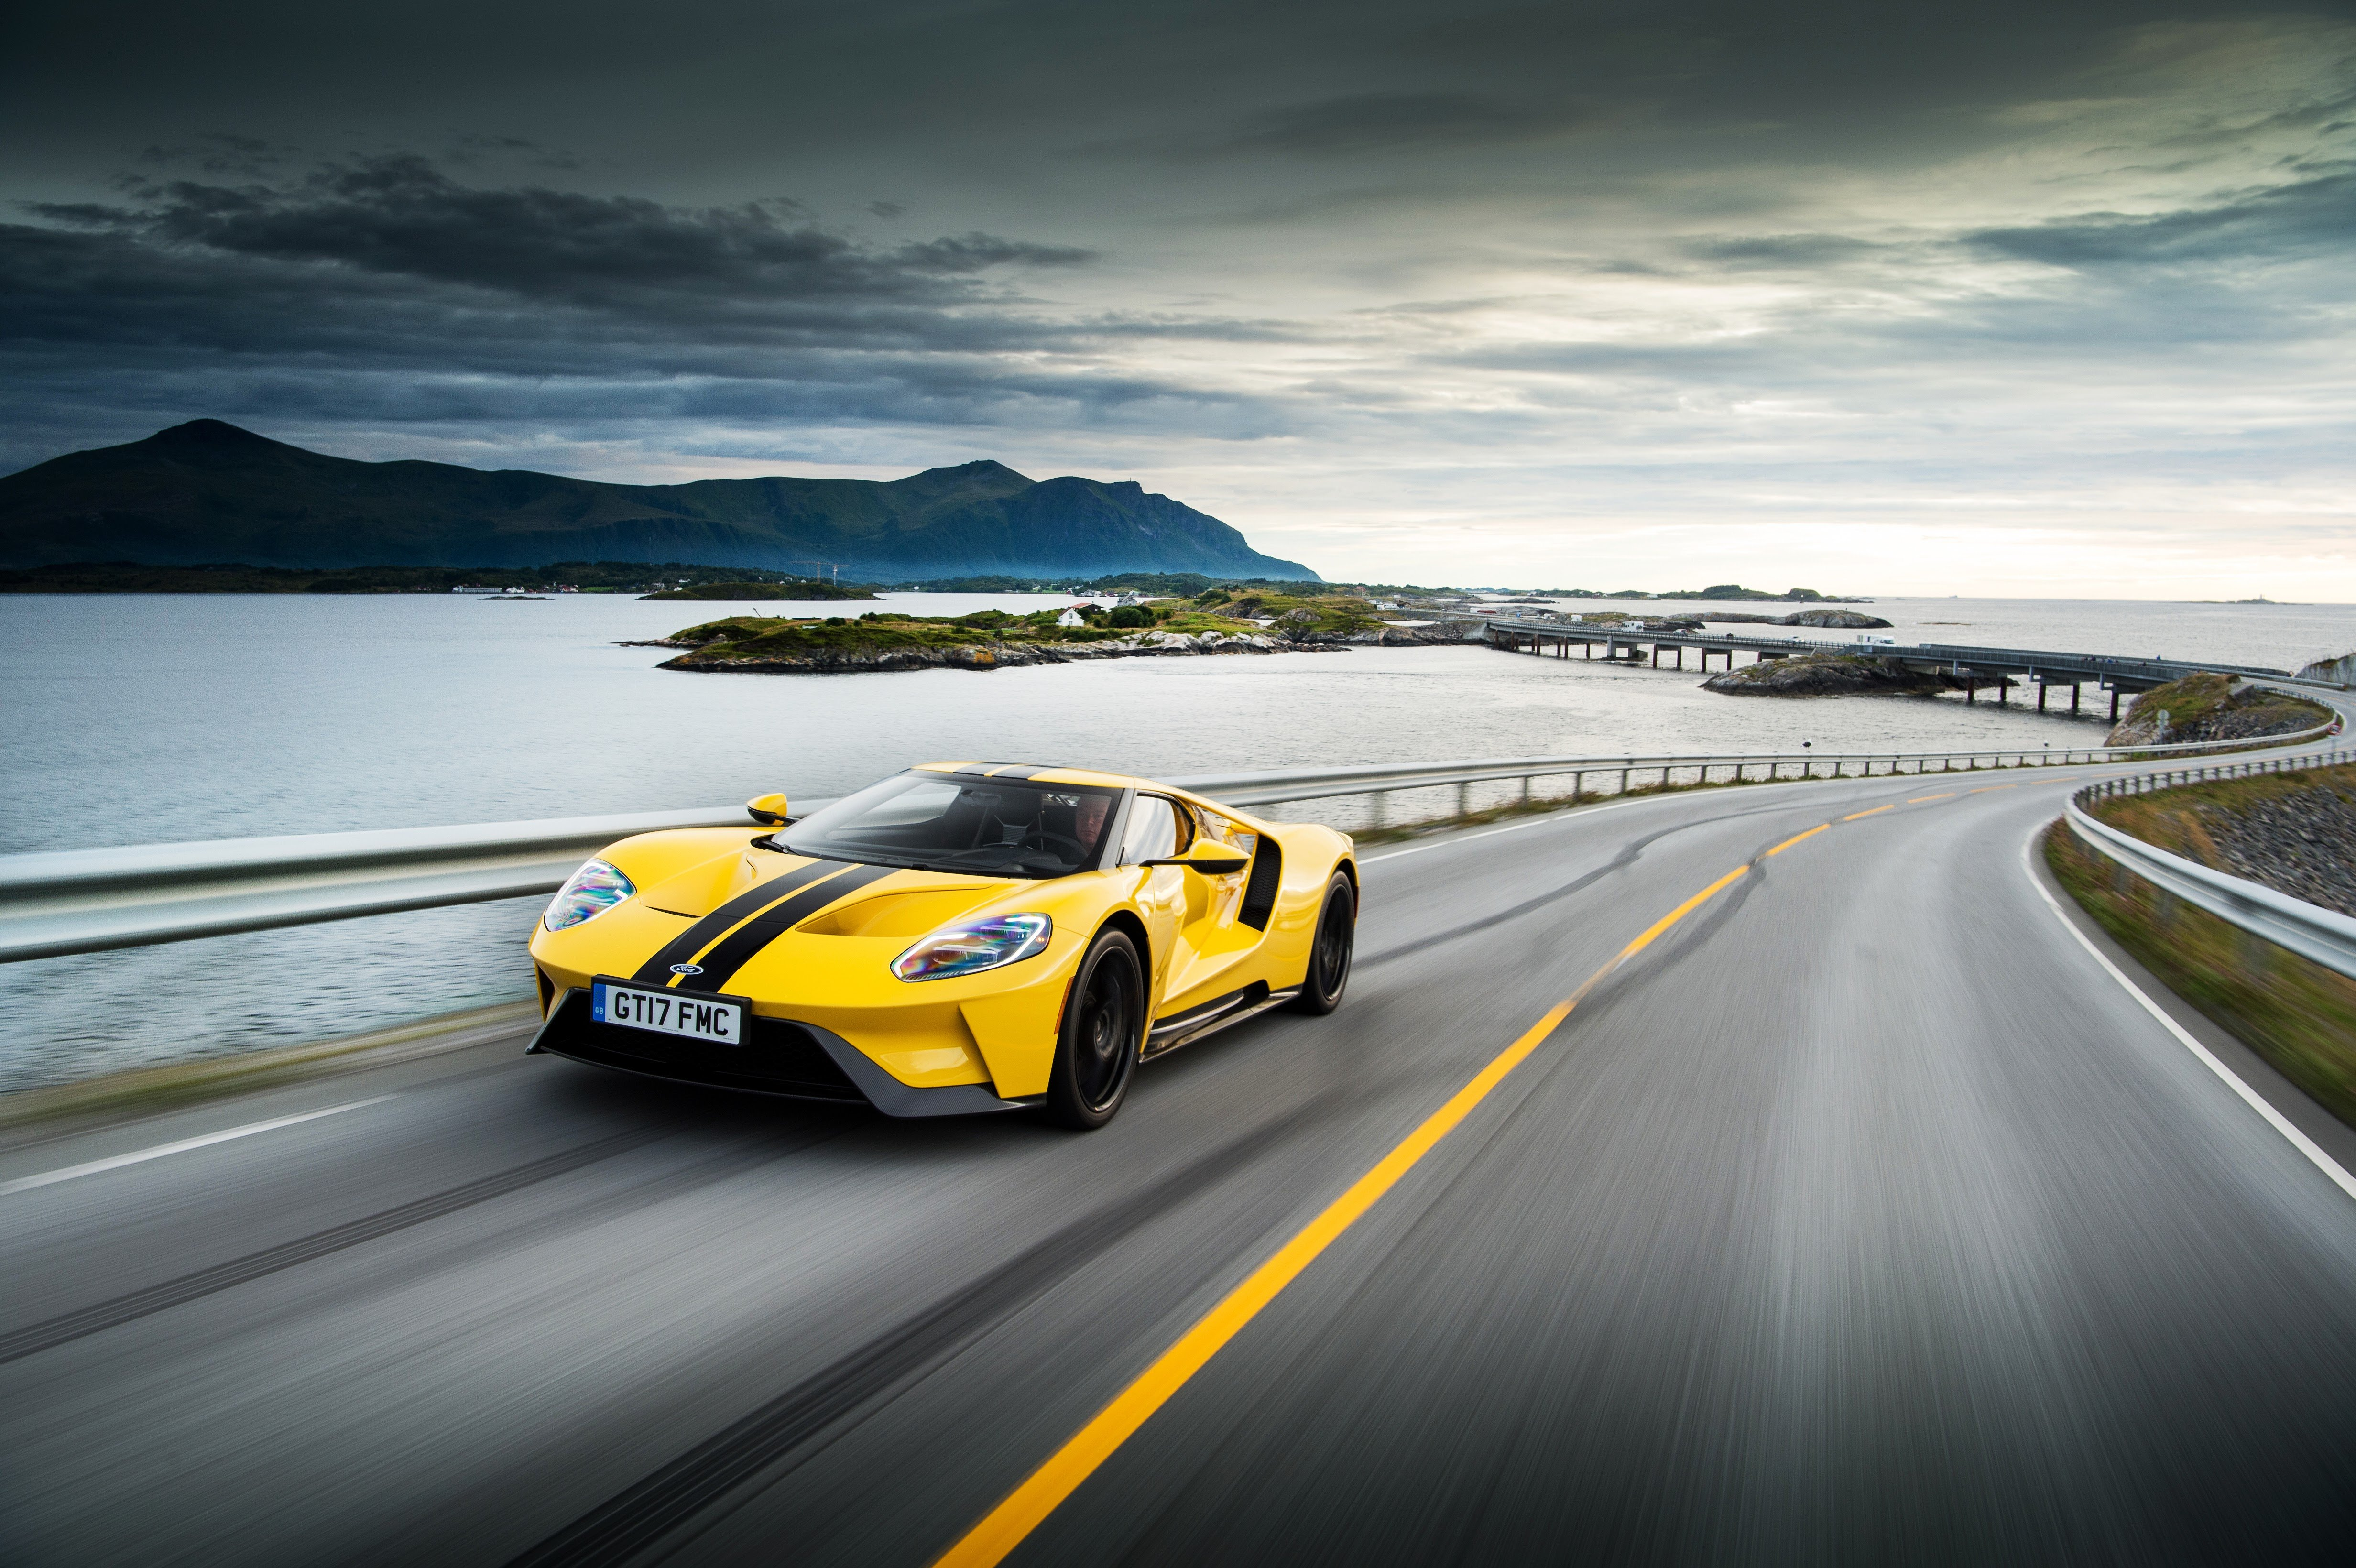 Ford Brought A Triple Yellow Gt To Norway For A Along The Beguiling Atlantic Ocean Road